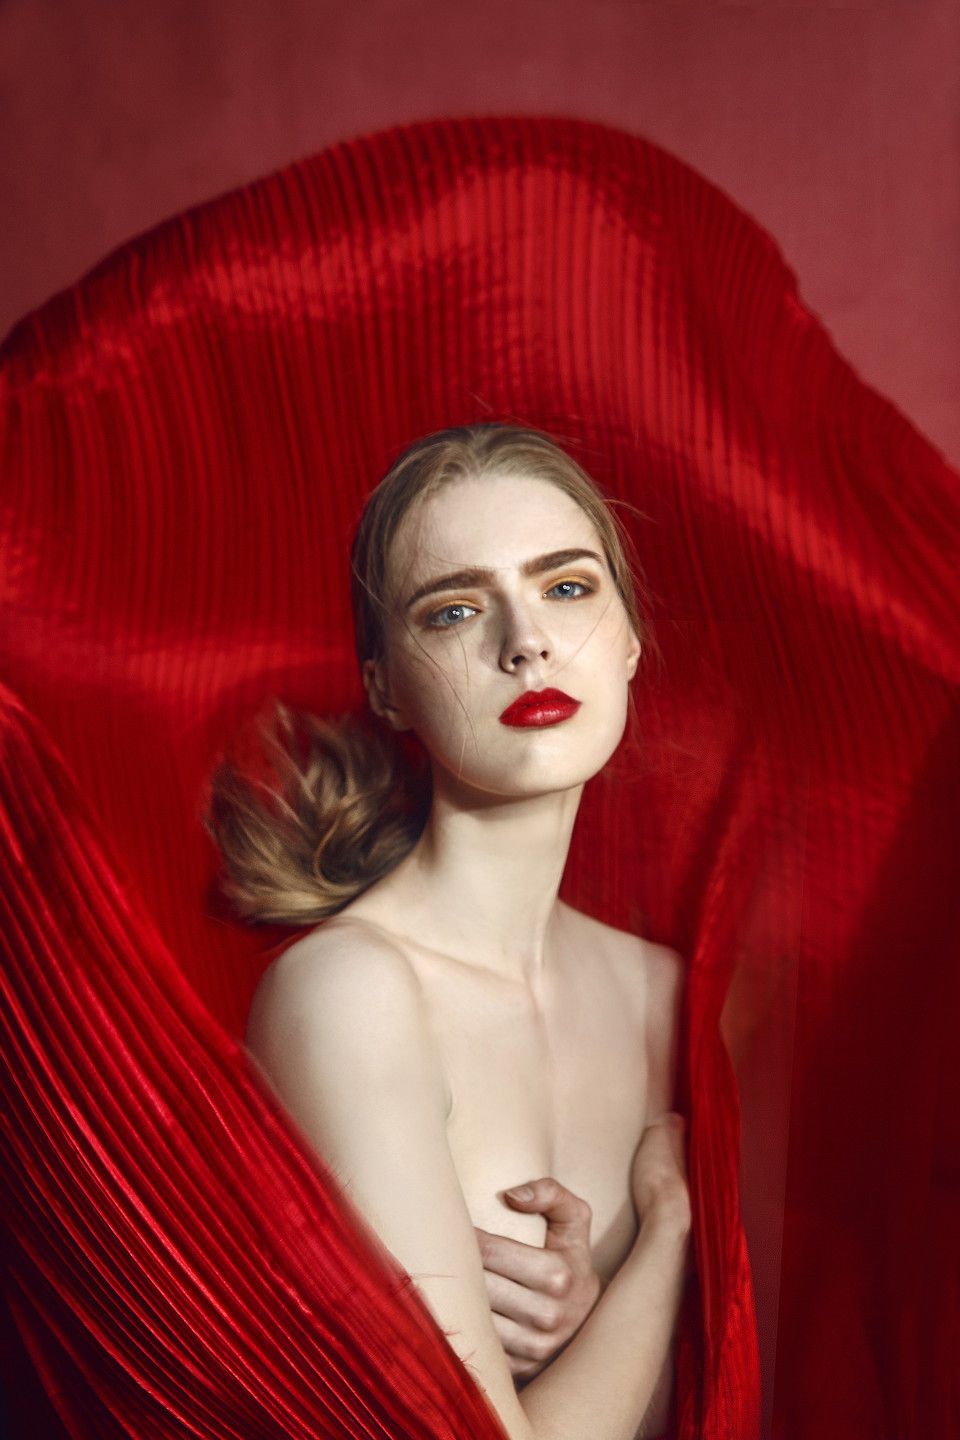 Red-Imirage-magazines-makeup-artist-fash